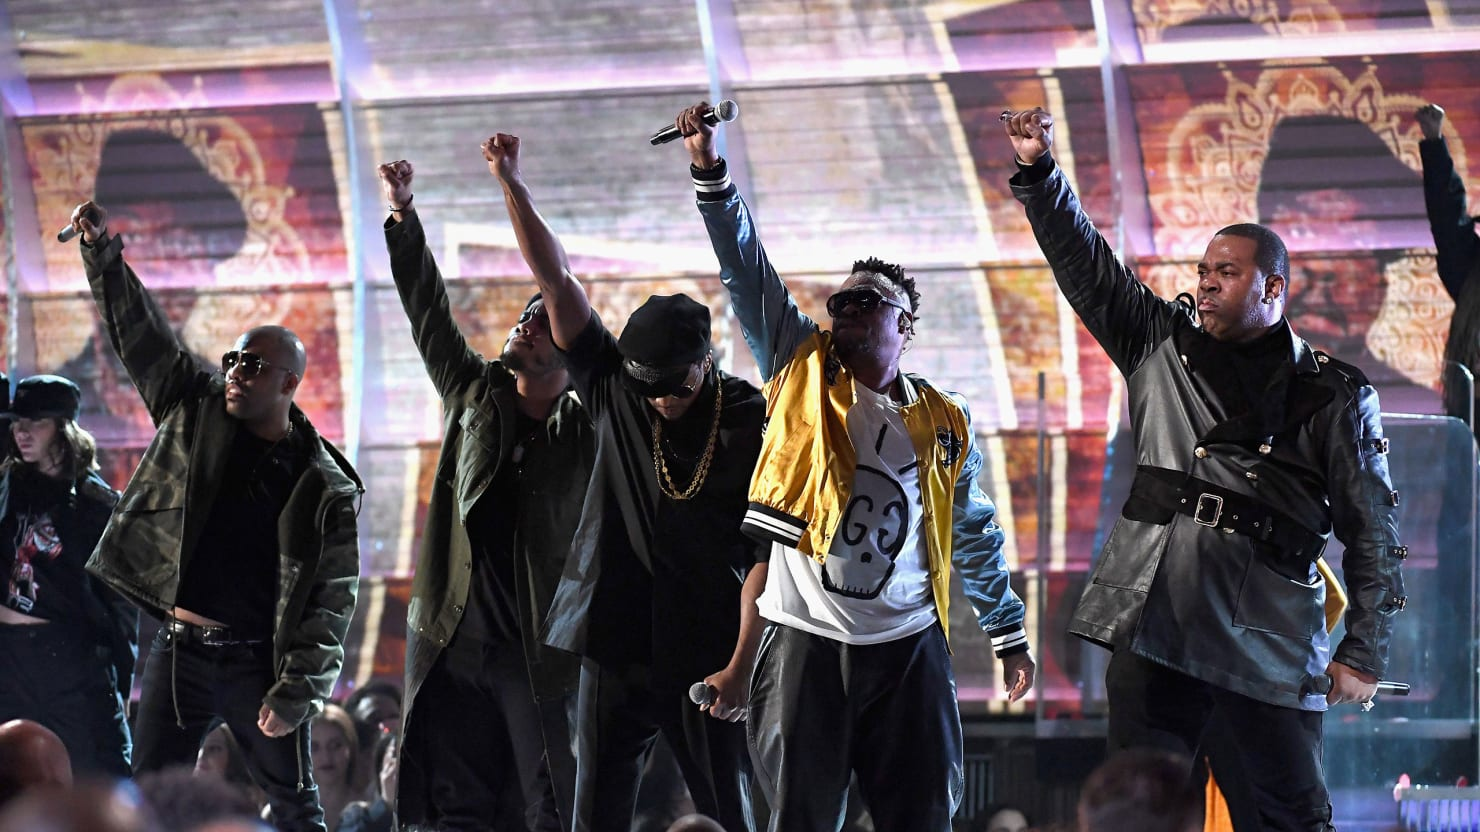 A Tribe Called Quest Come for 'Agent Orange' Trump at the Grammys